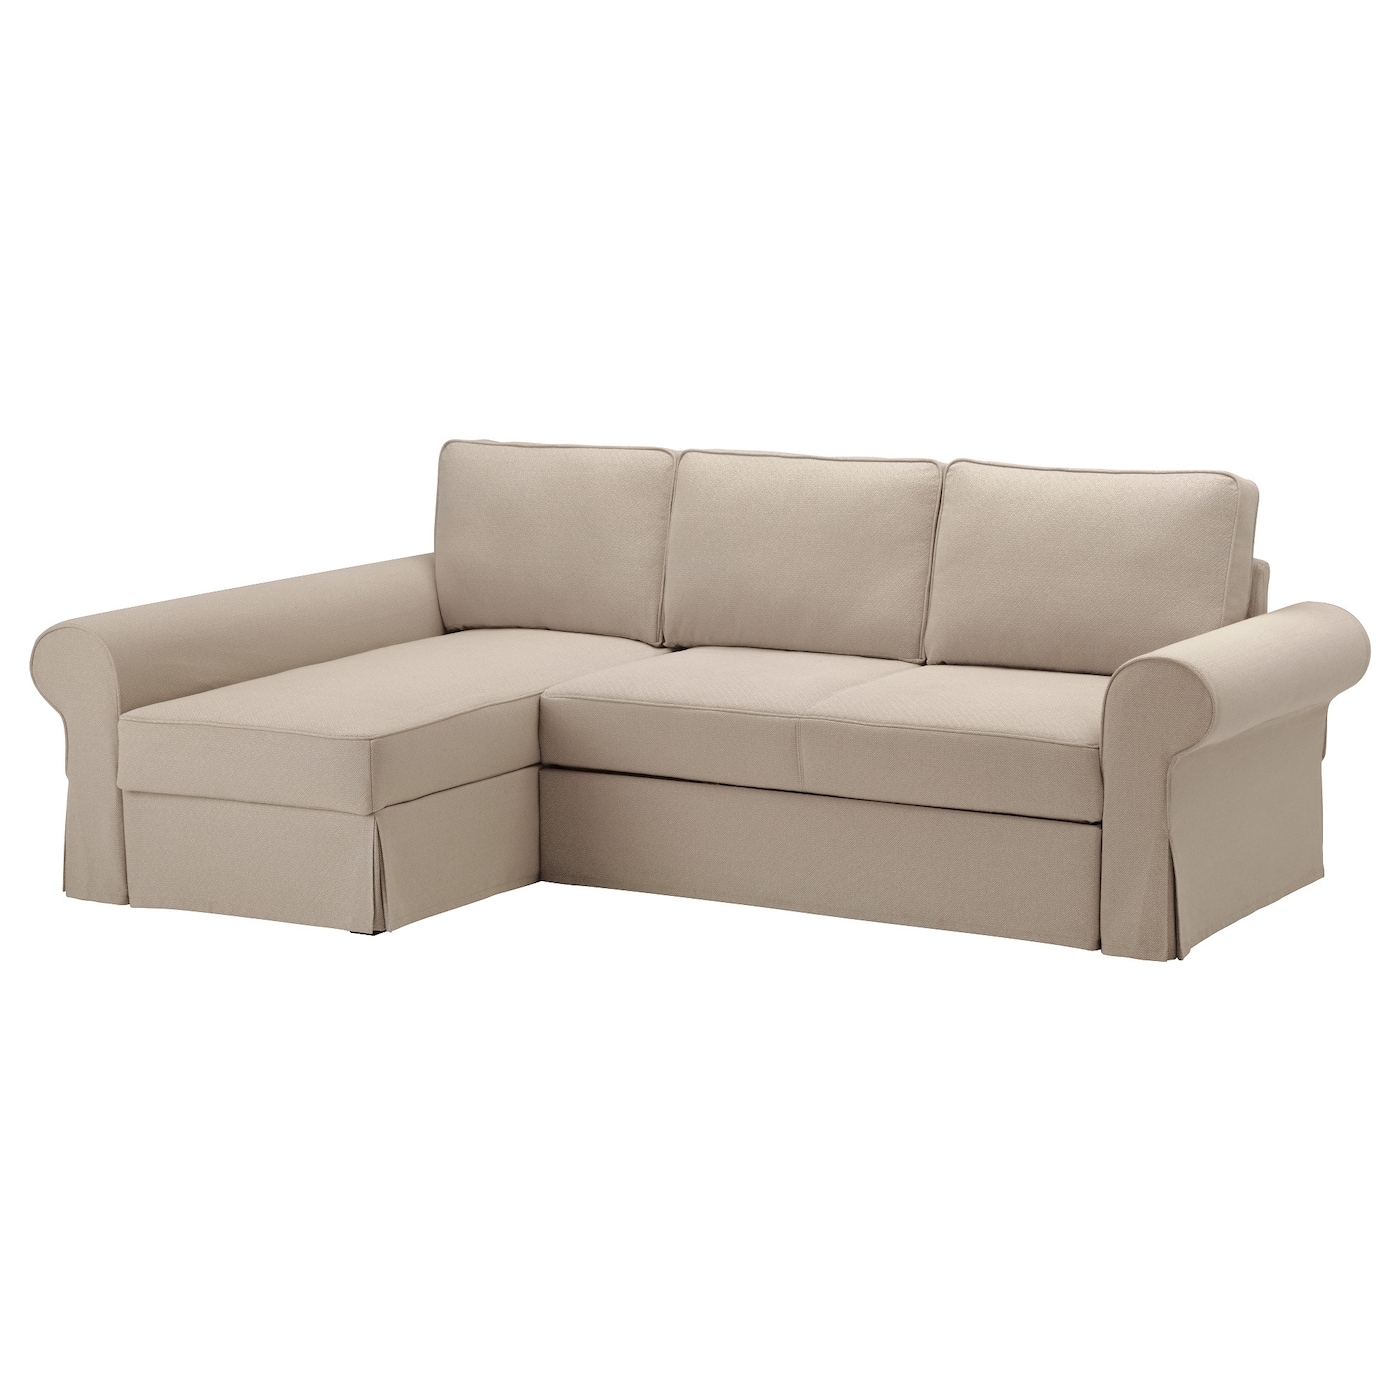 Backabro sofa bed with chaise longue hylte beige ikea for Chaise longue sofa